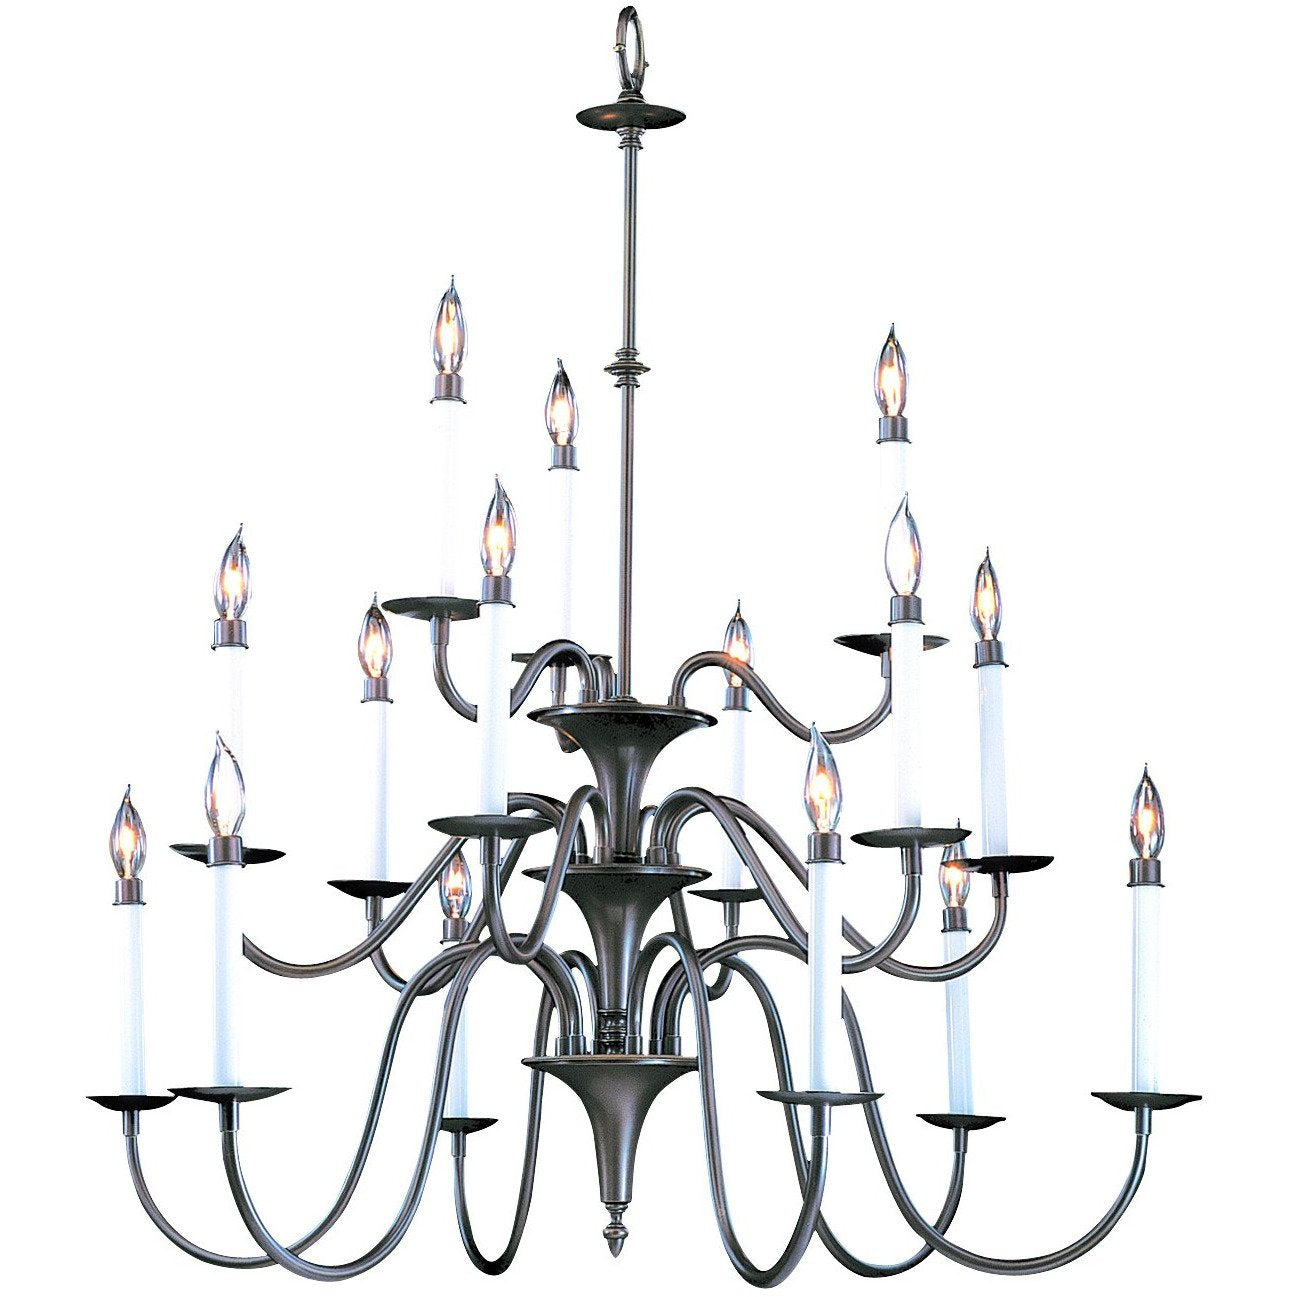 Framburg Foyer Chandeliers Mahogany Bronze 15-Light Mahogany Bronze Jamestown Foyer Chandelier by Framburg 9235